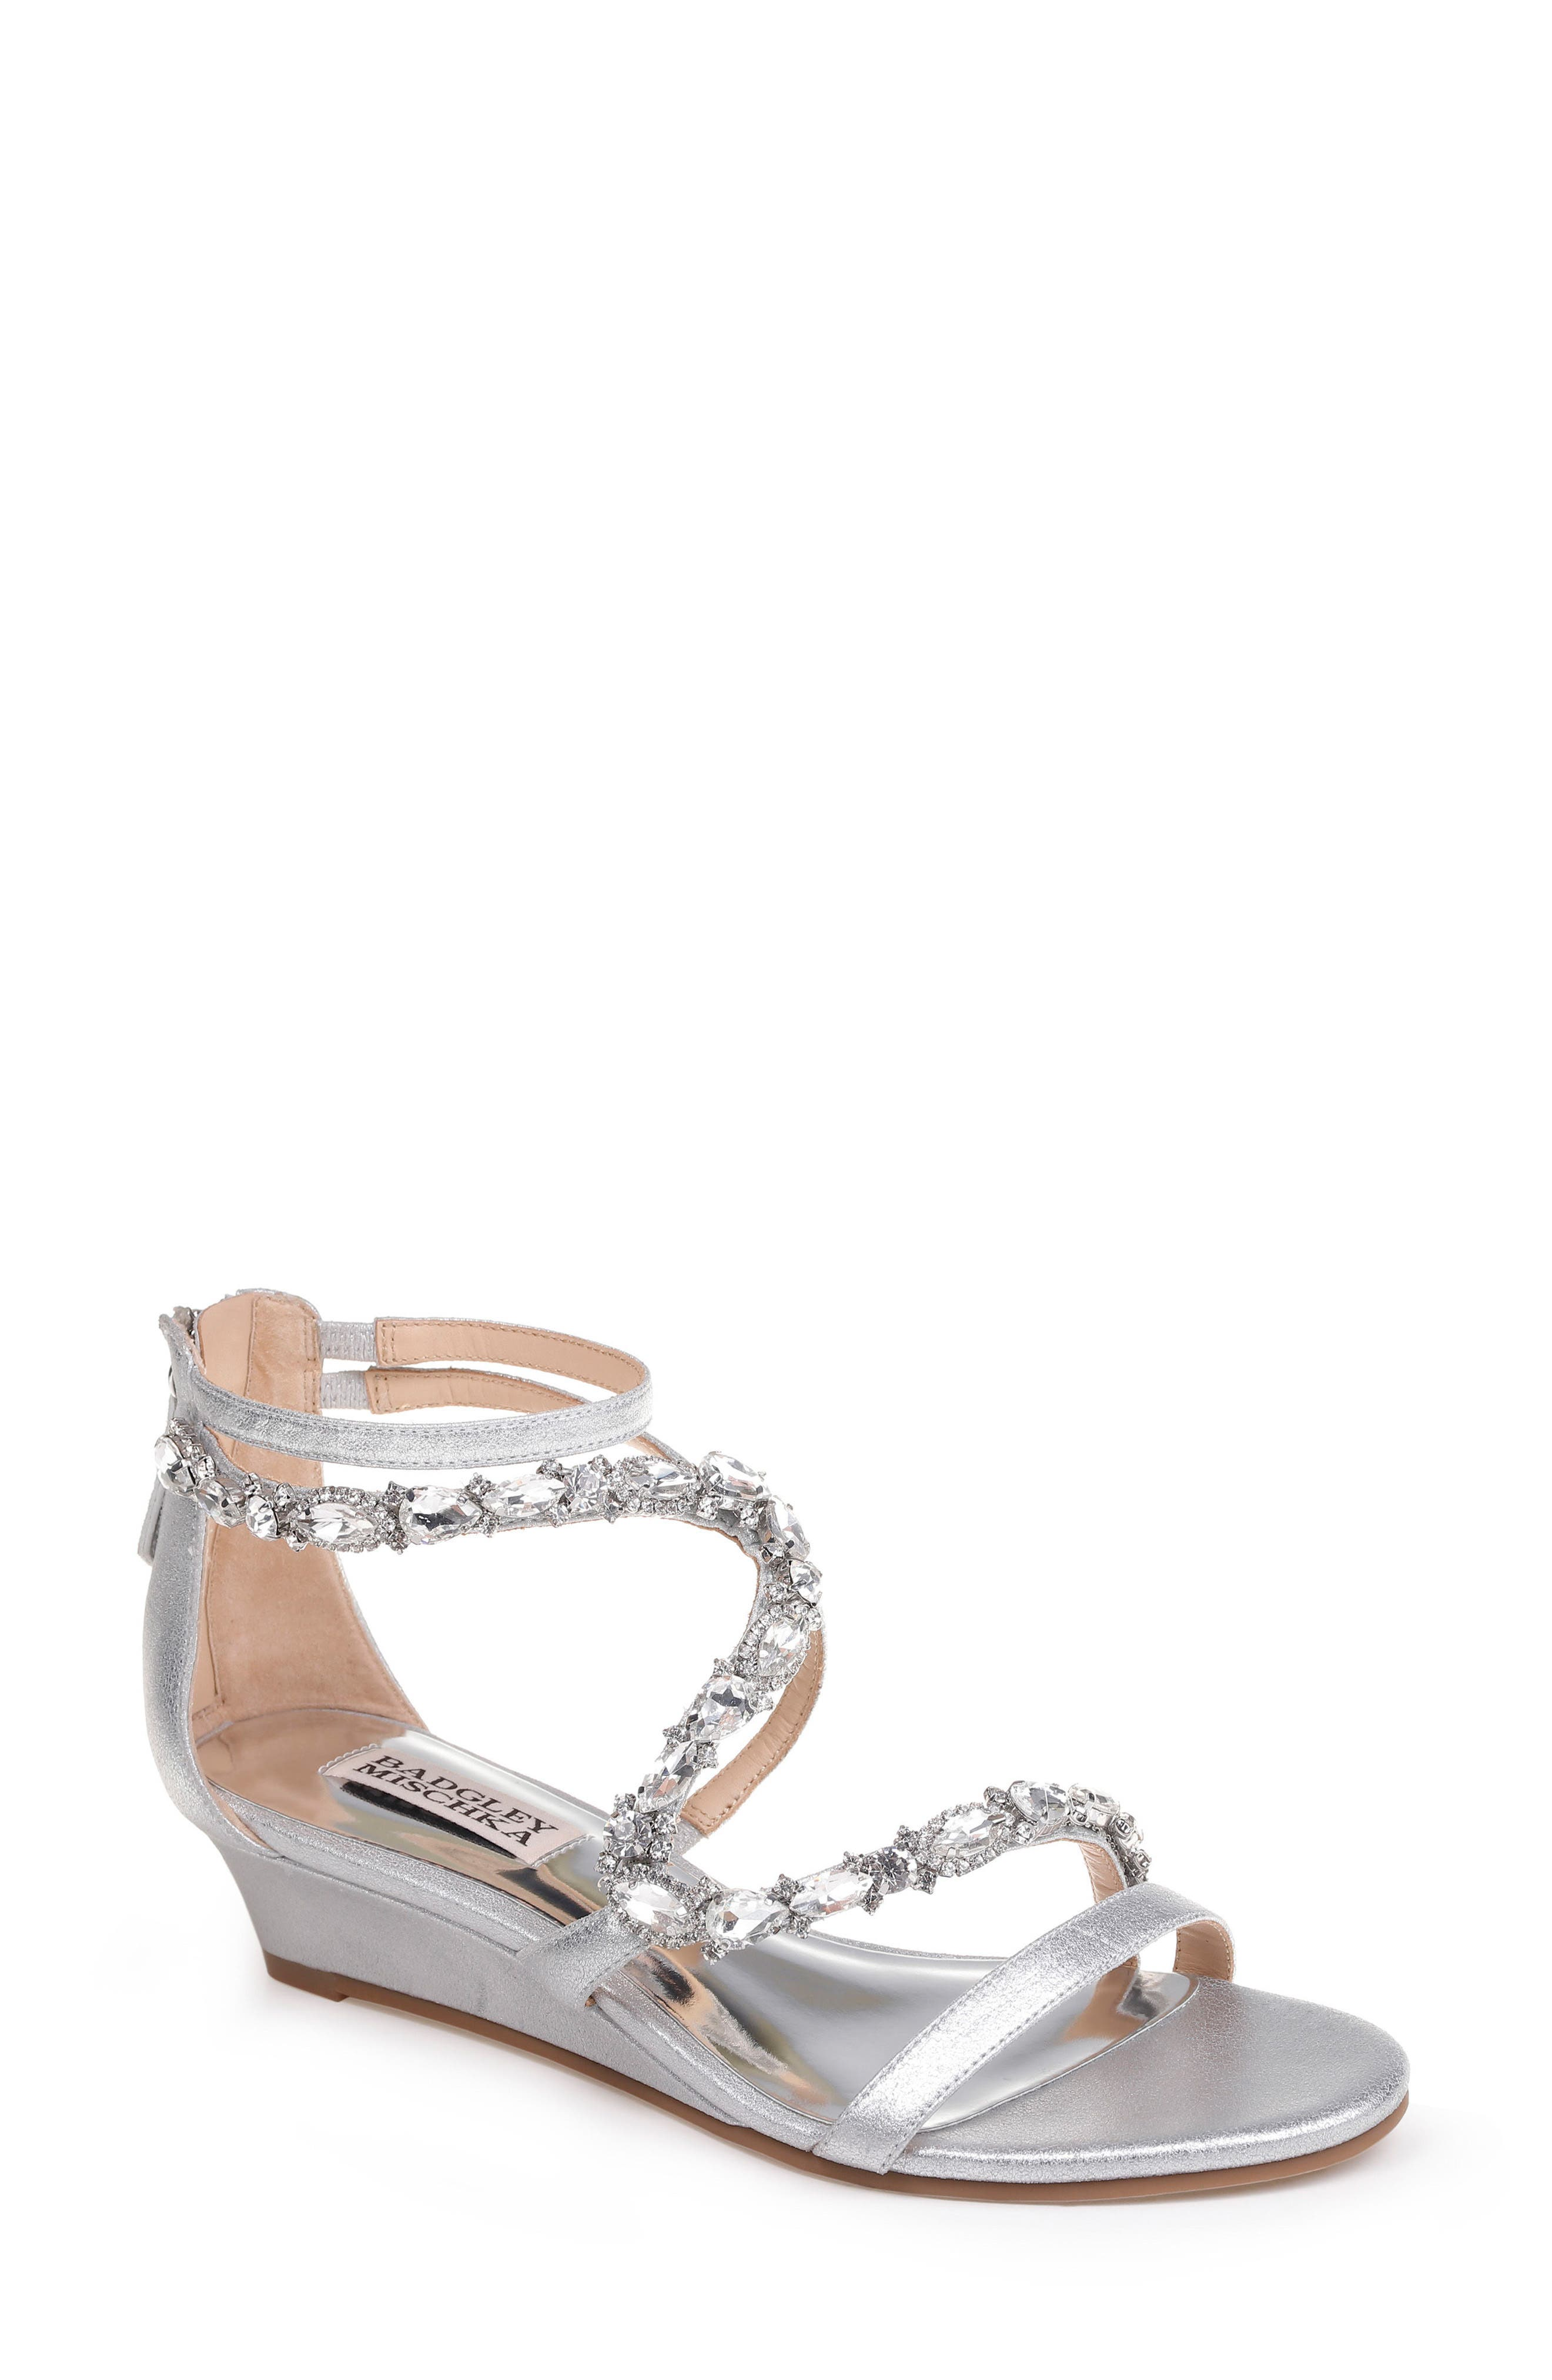 Sierra Strappy Wedge Sandal,                         Main,                         color,